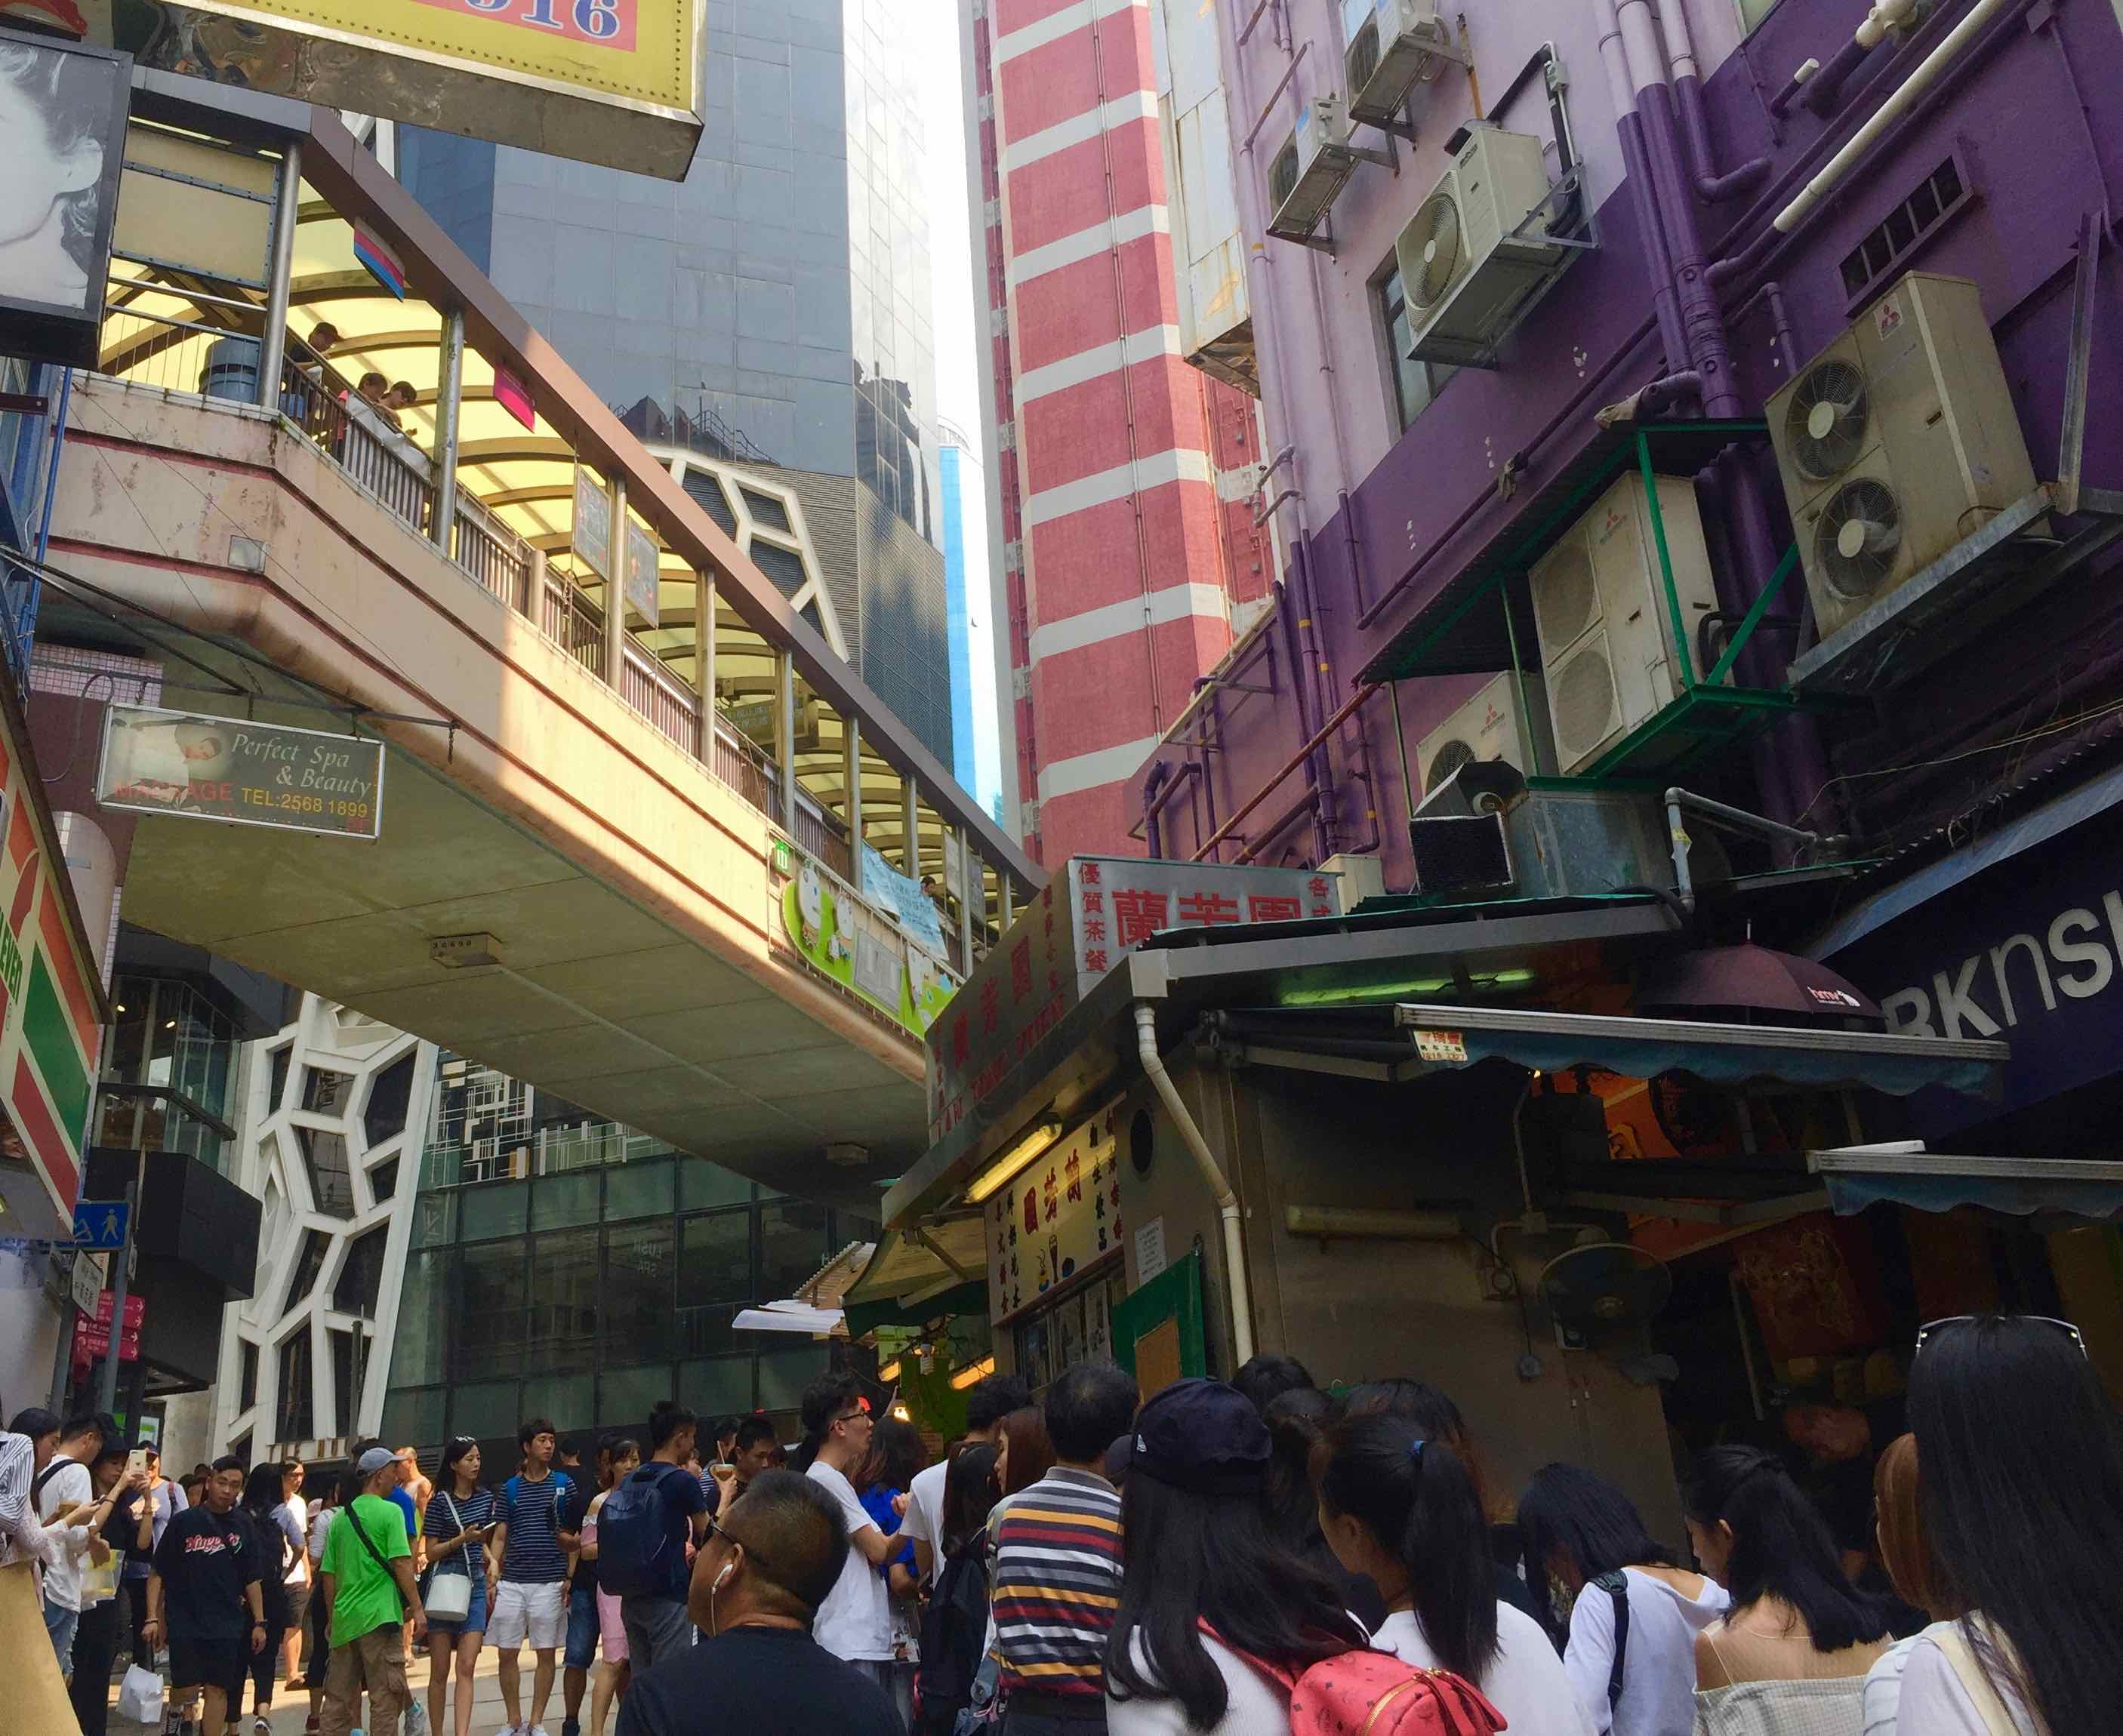 HK Central Gage Street food & beverage shop for rent with tourist crowds